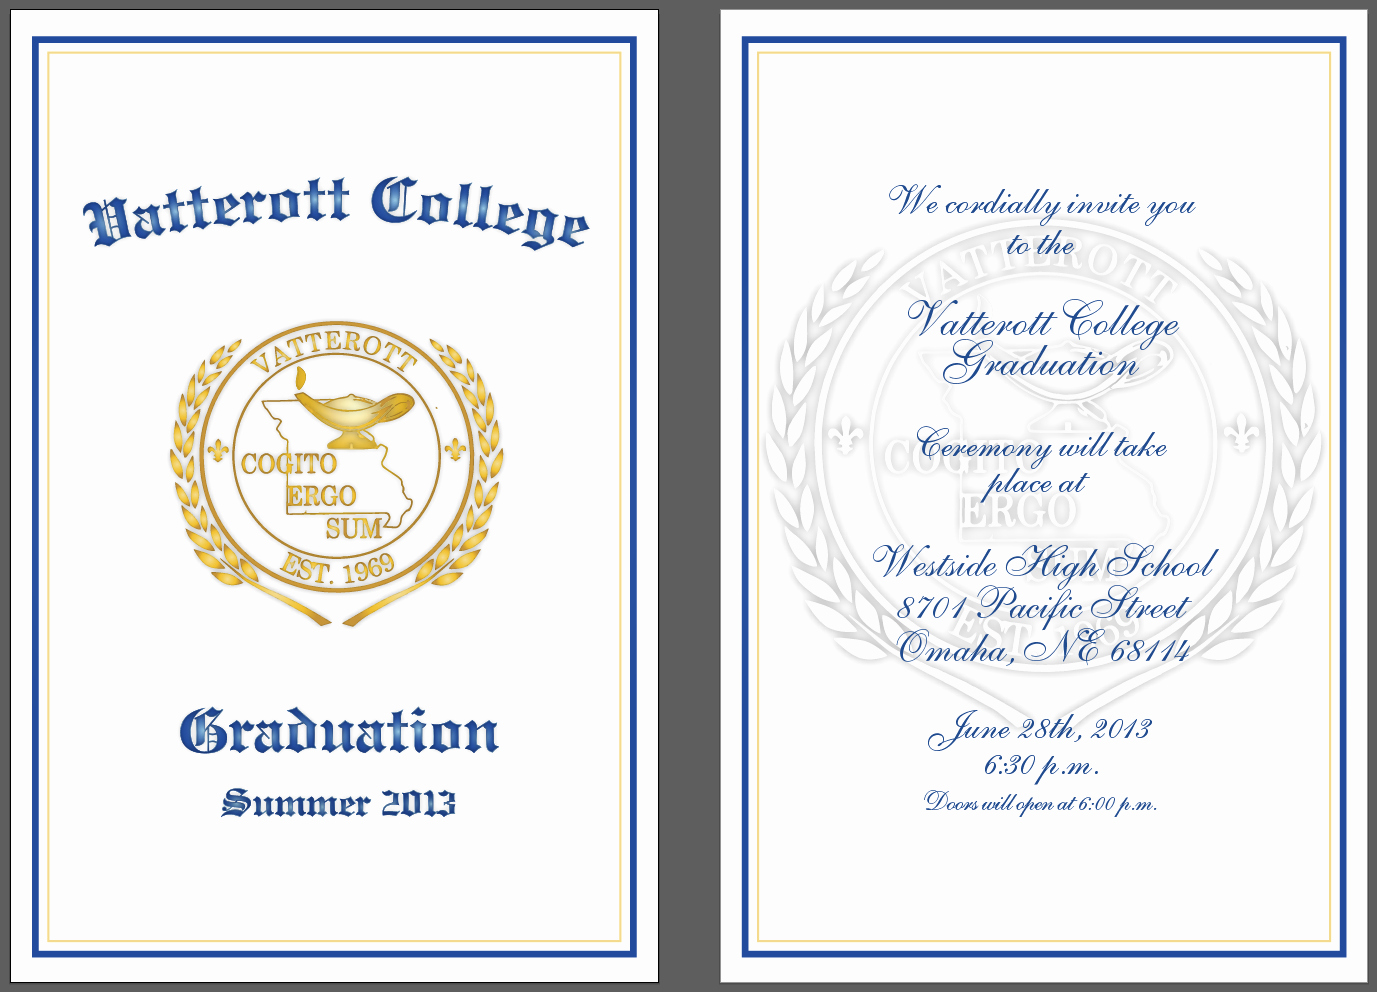 Graduation Program Template Microsoft Word Luxury Preschool Graduation Ceremony Program Sample